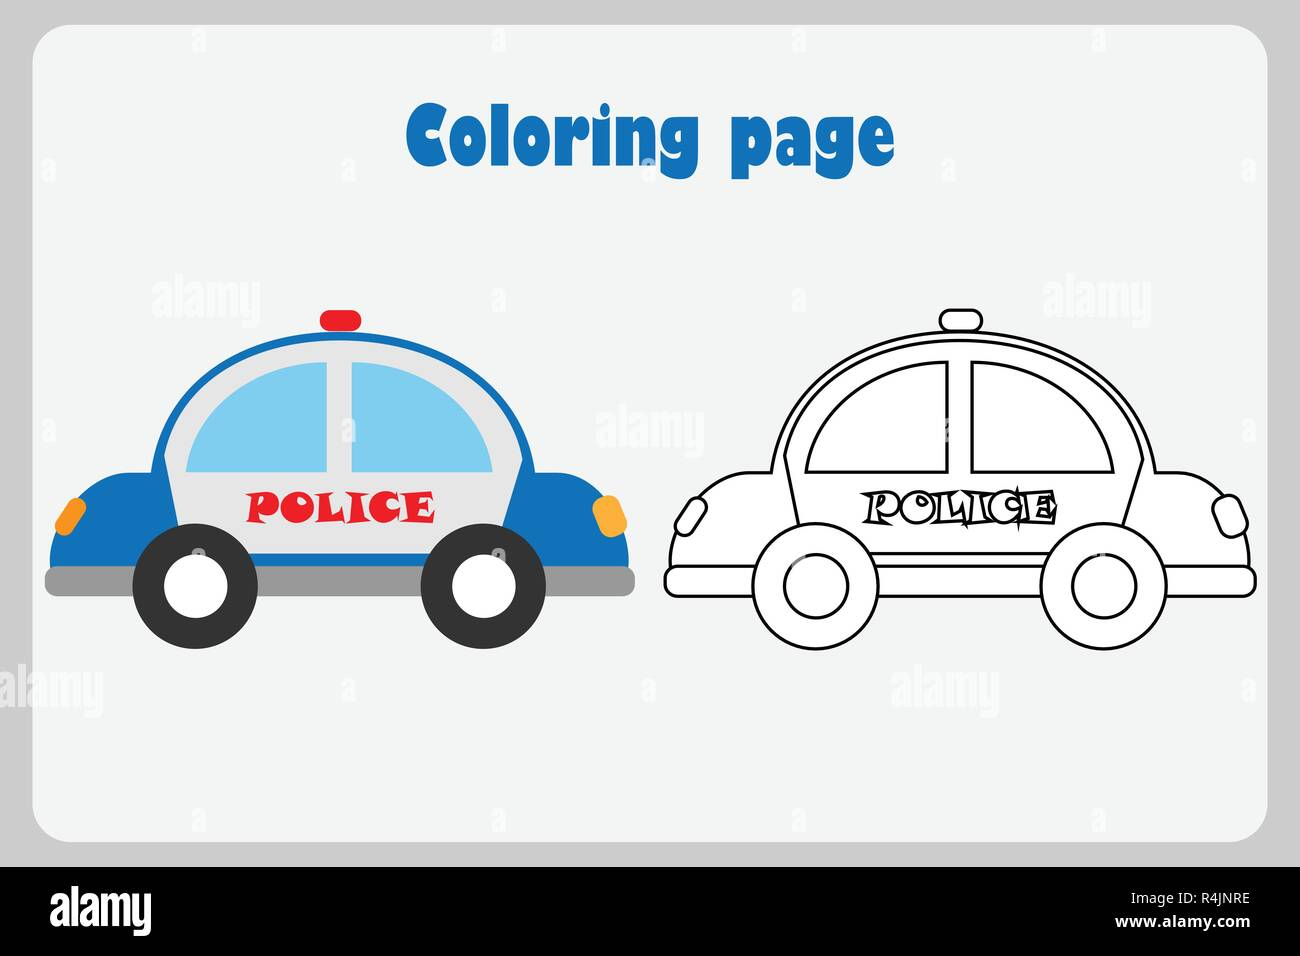 Police Car In Cartoon Style Coloring Page Education